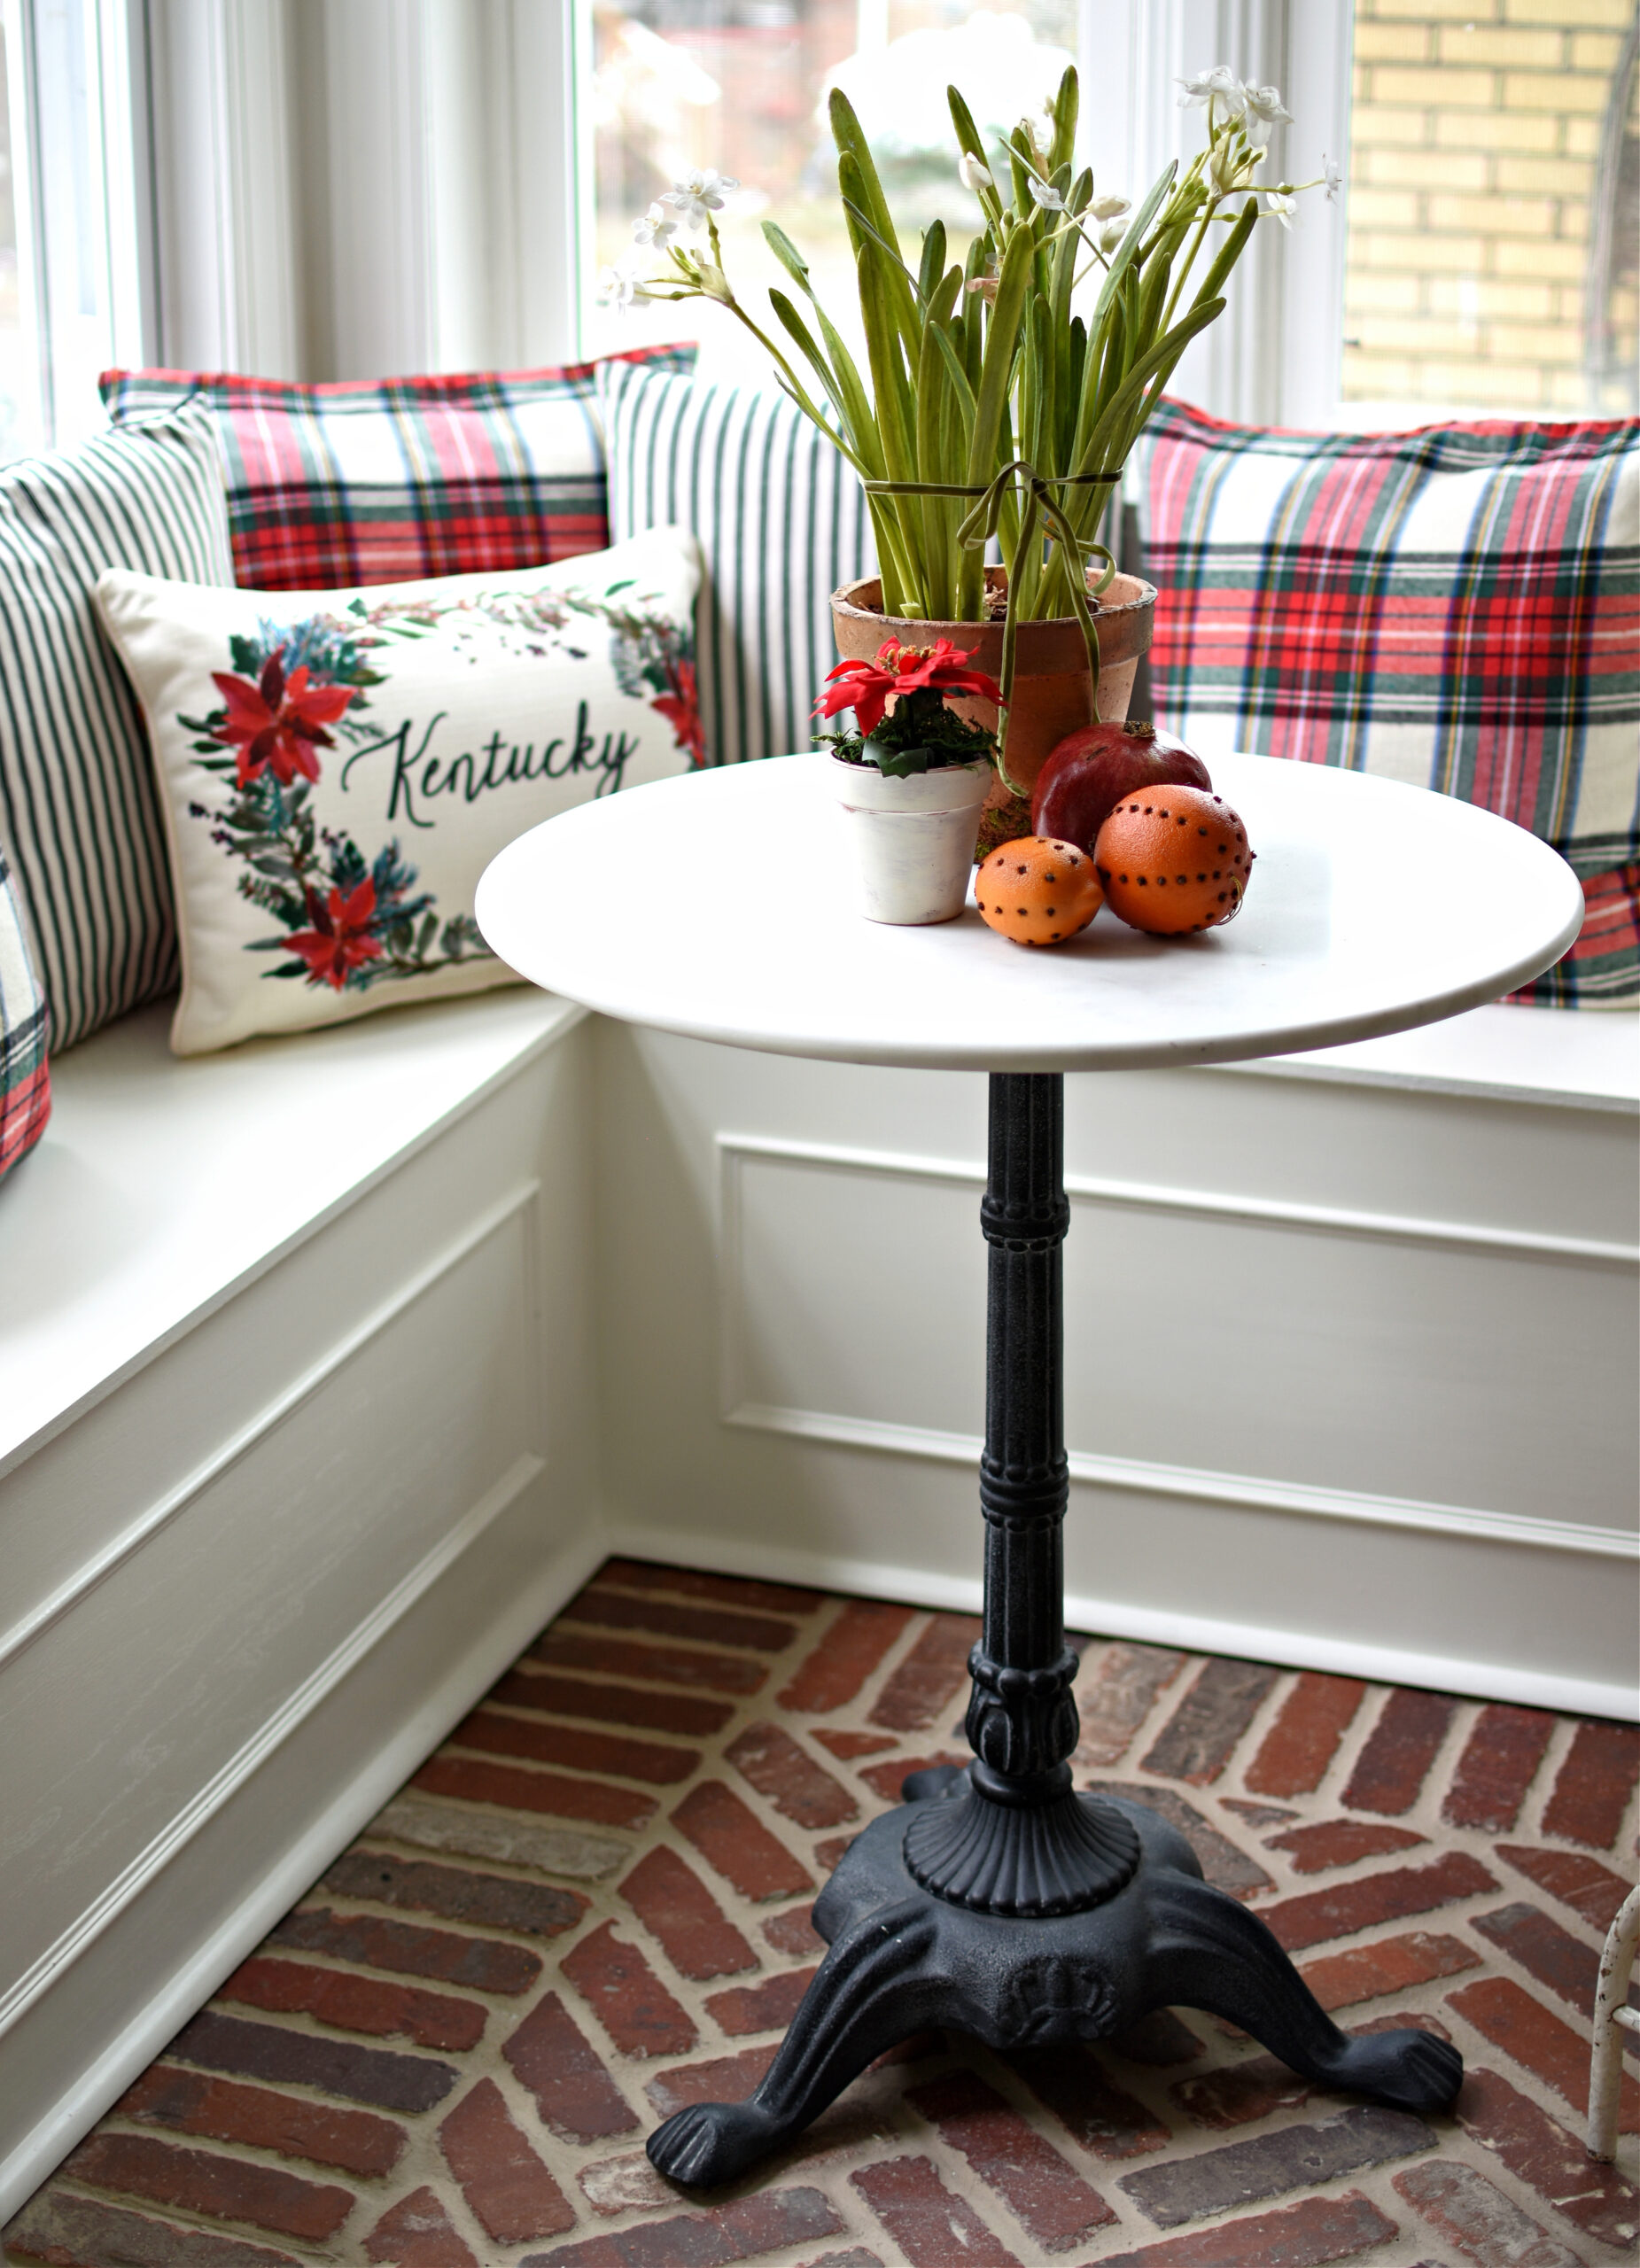 Cute Christmas breakfast nook ideas plaid pillows ticking stripe pillows on a window seat. World Market Marble Bistro Table and herringbone brick floors. Christmas kitchen